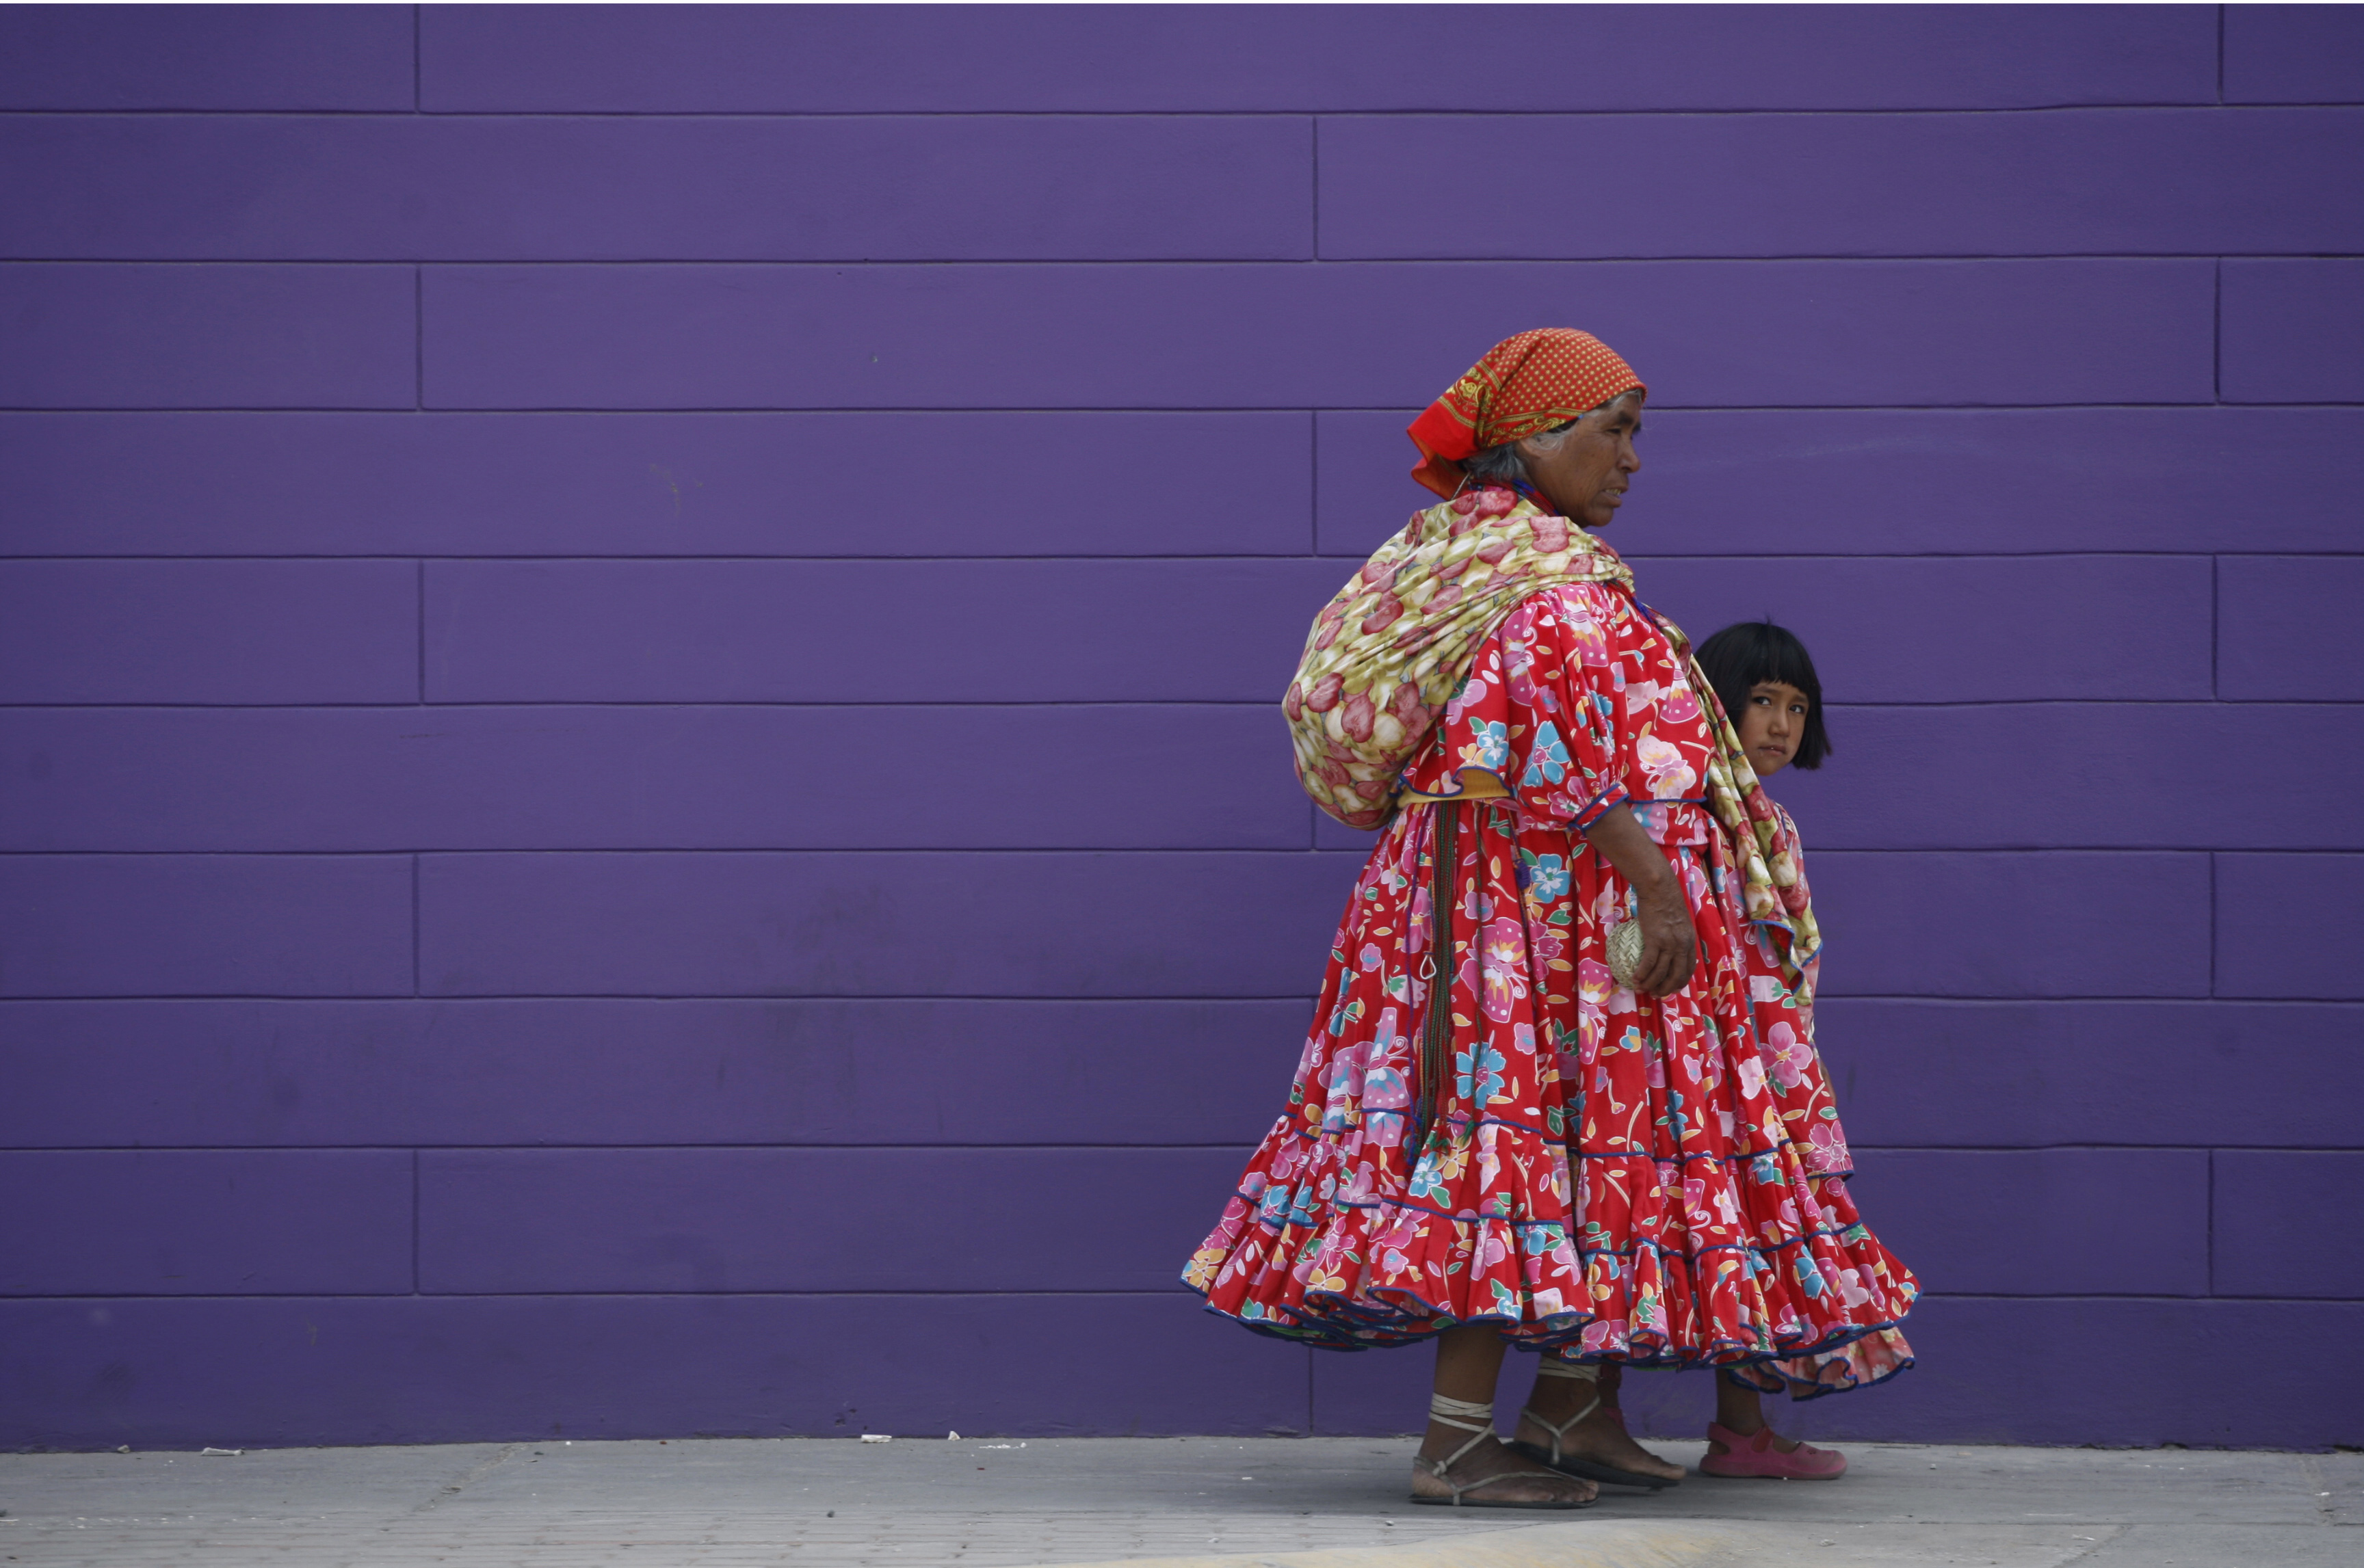 http://www.latintimes.com/photographer-diego-huerta-portrays-beauty-mexican-indigenous-communities-stunning-380356